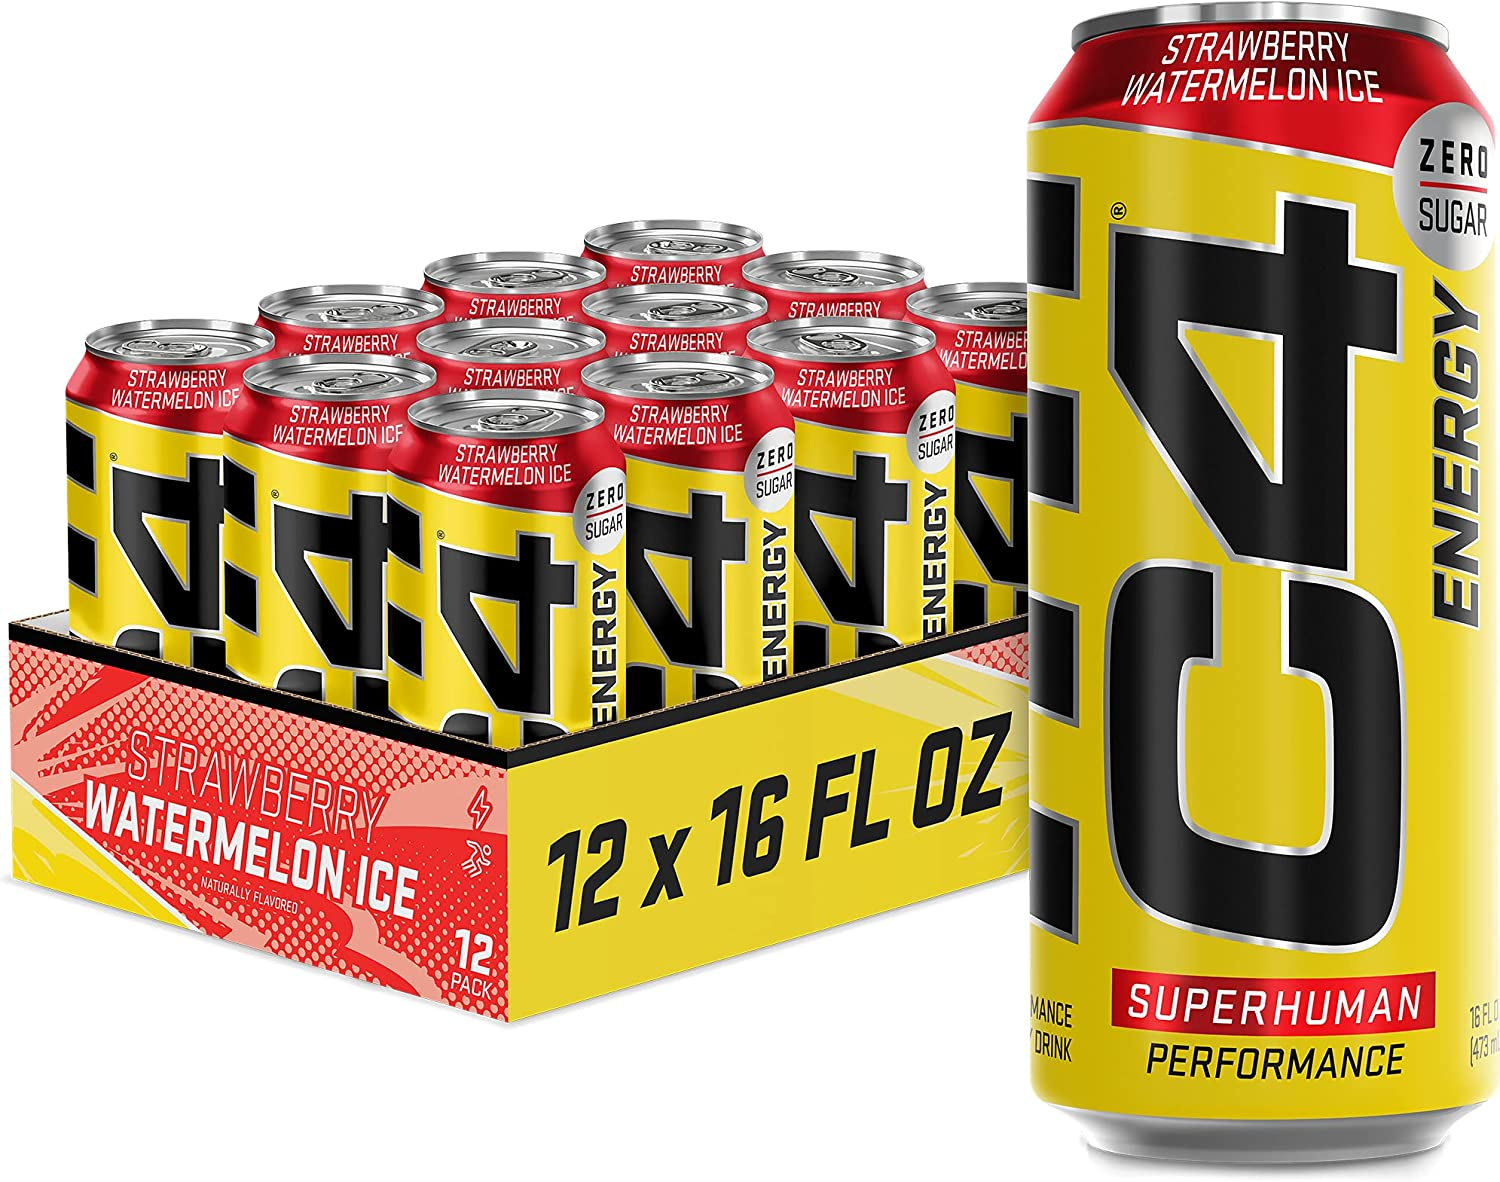 C4 Energy Drink Same day shipping 16oz Pack Low price of Watermelon Strawberry - Ice 12